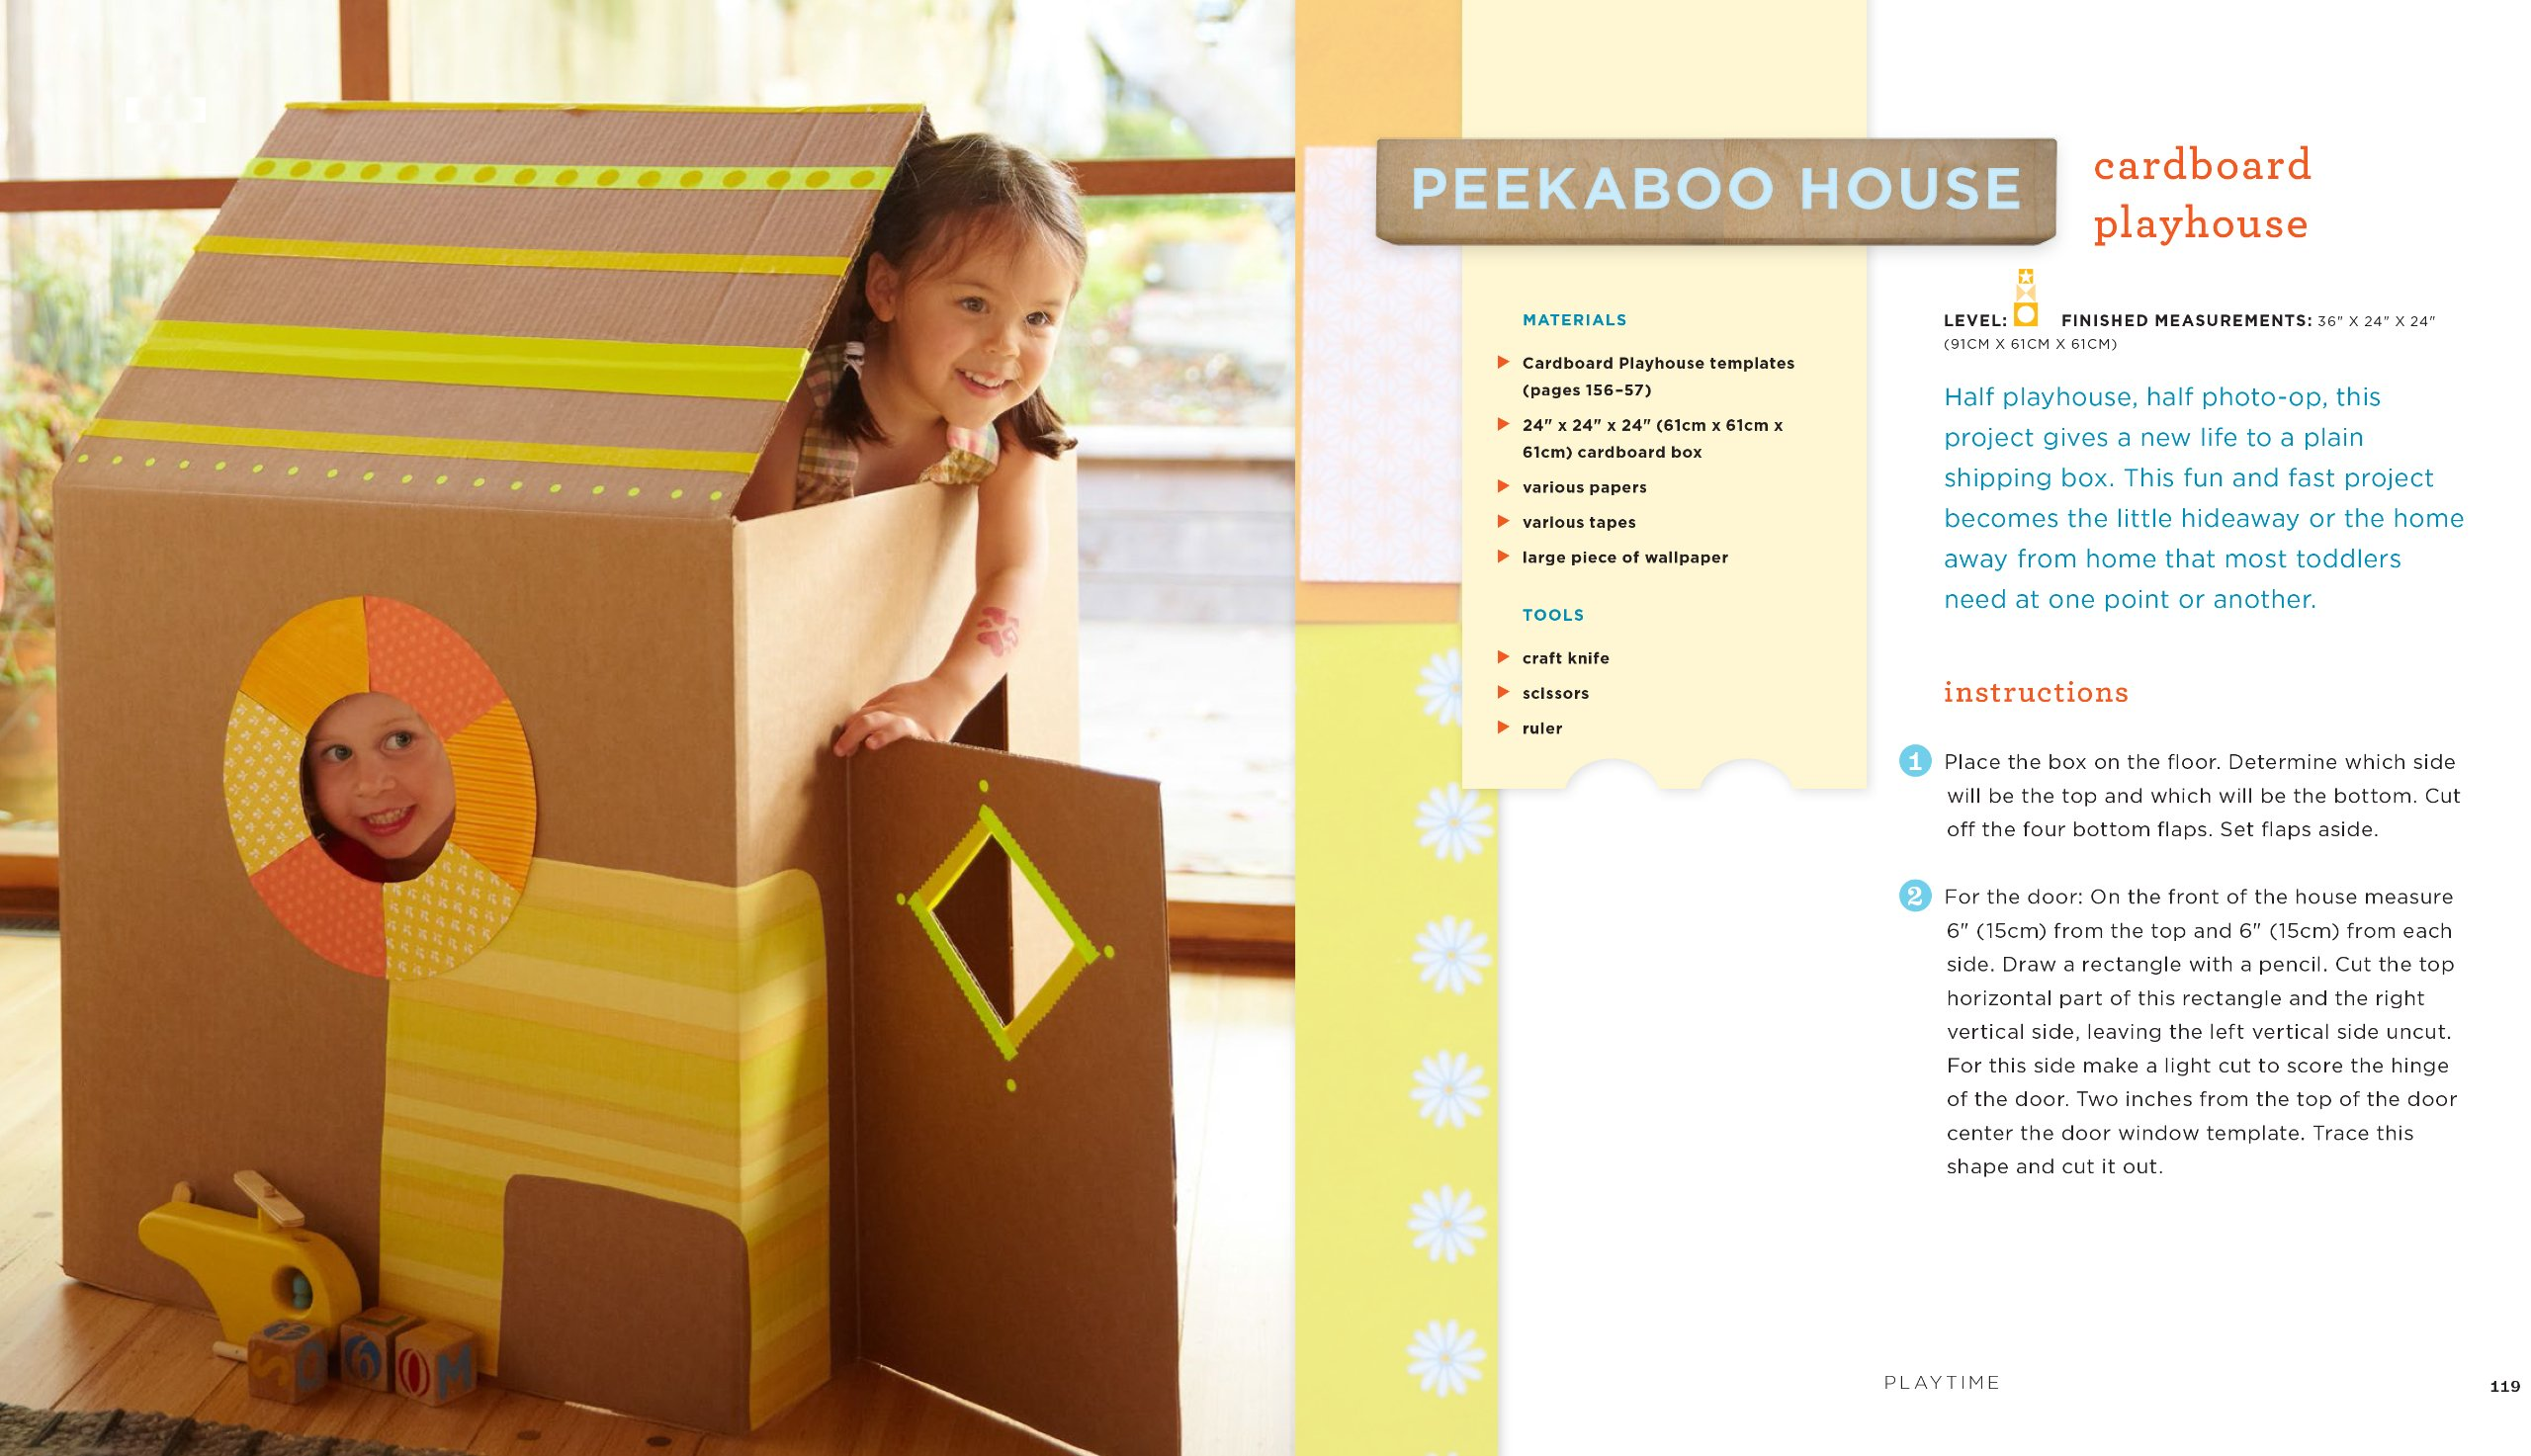 Instructions for A Cardboard Playhouse